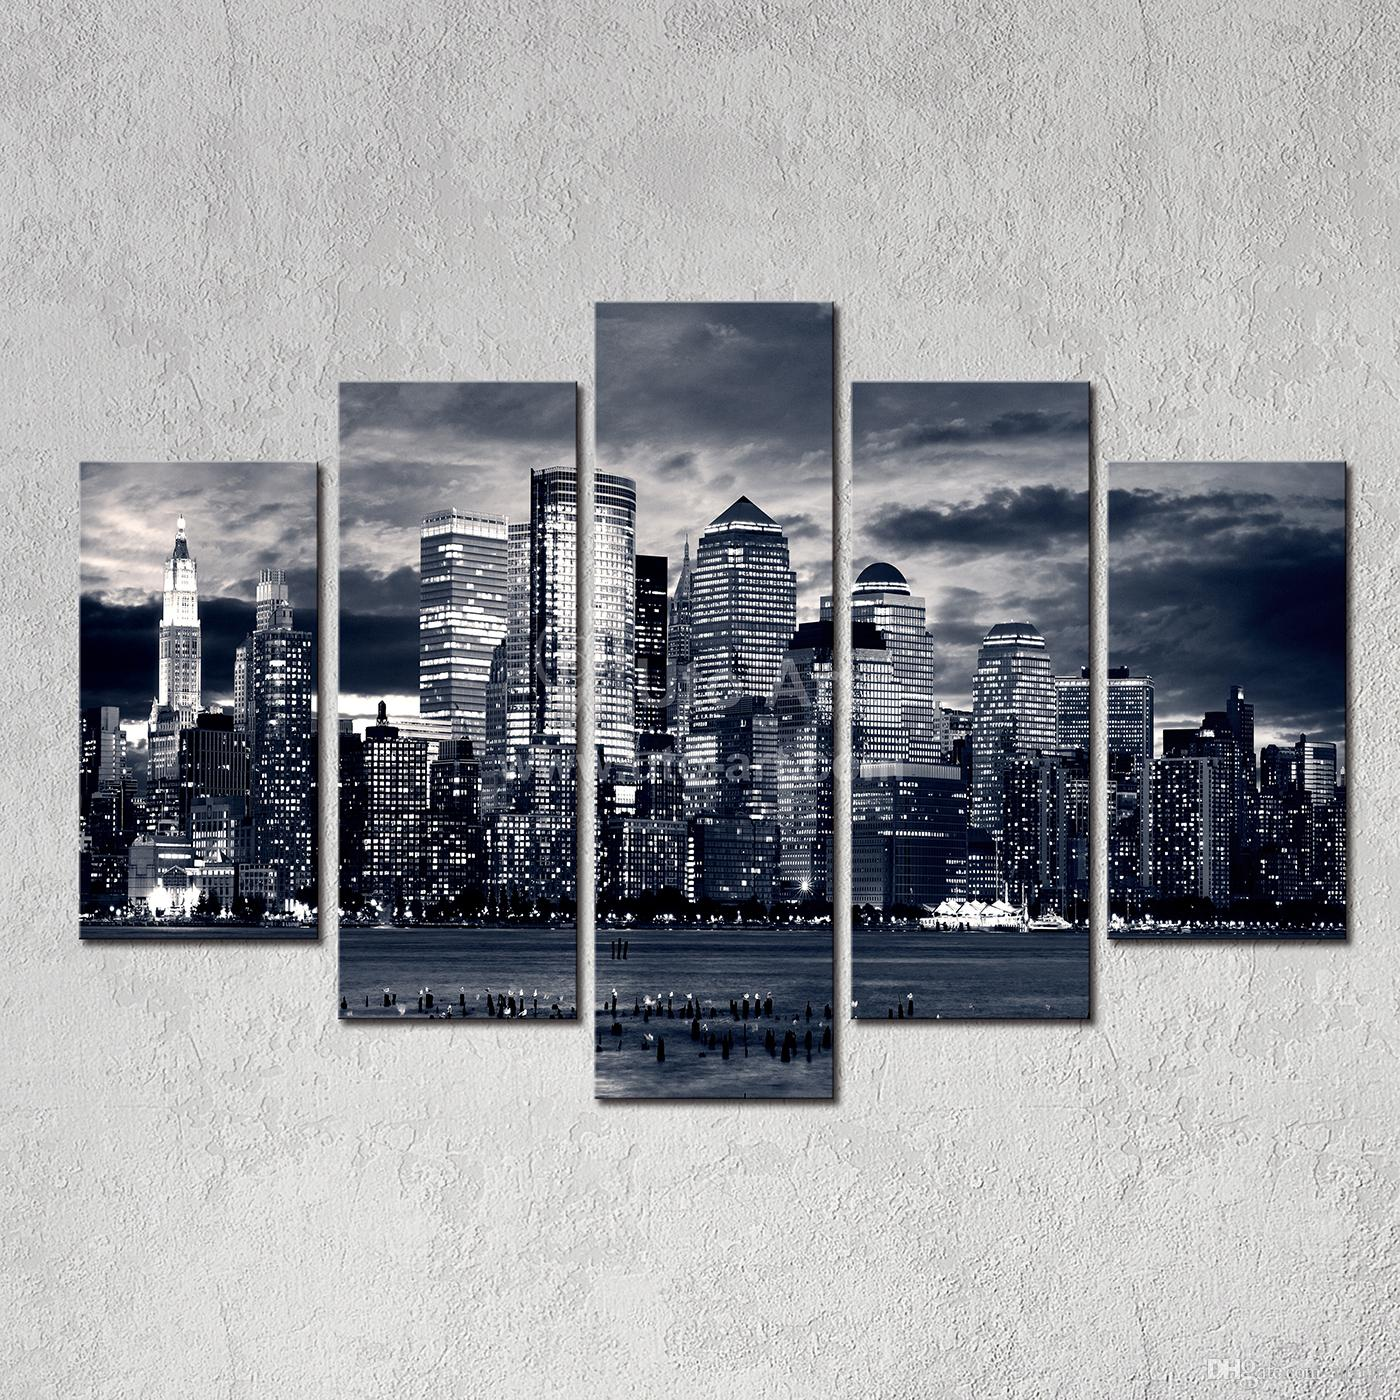 2019 modern home decor new york city painting black white digital picture print on canvas art panel for wall decoration from utoart 14 56 dhgate com